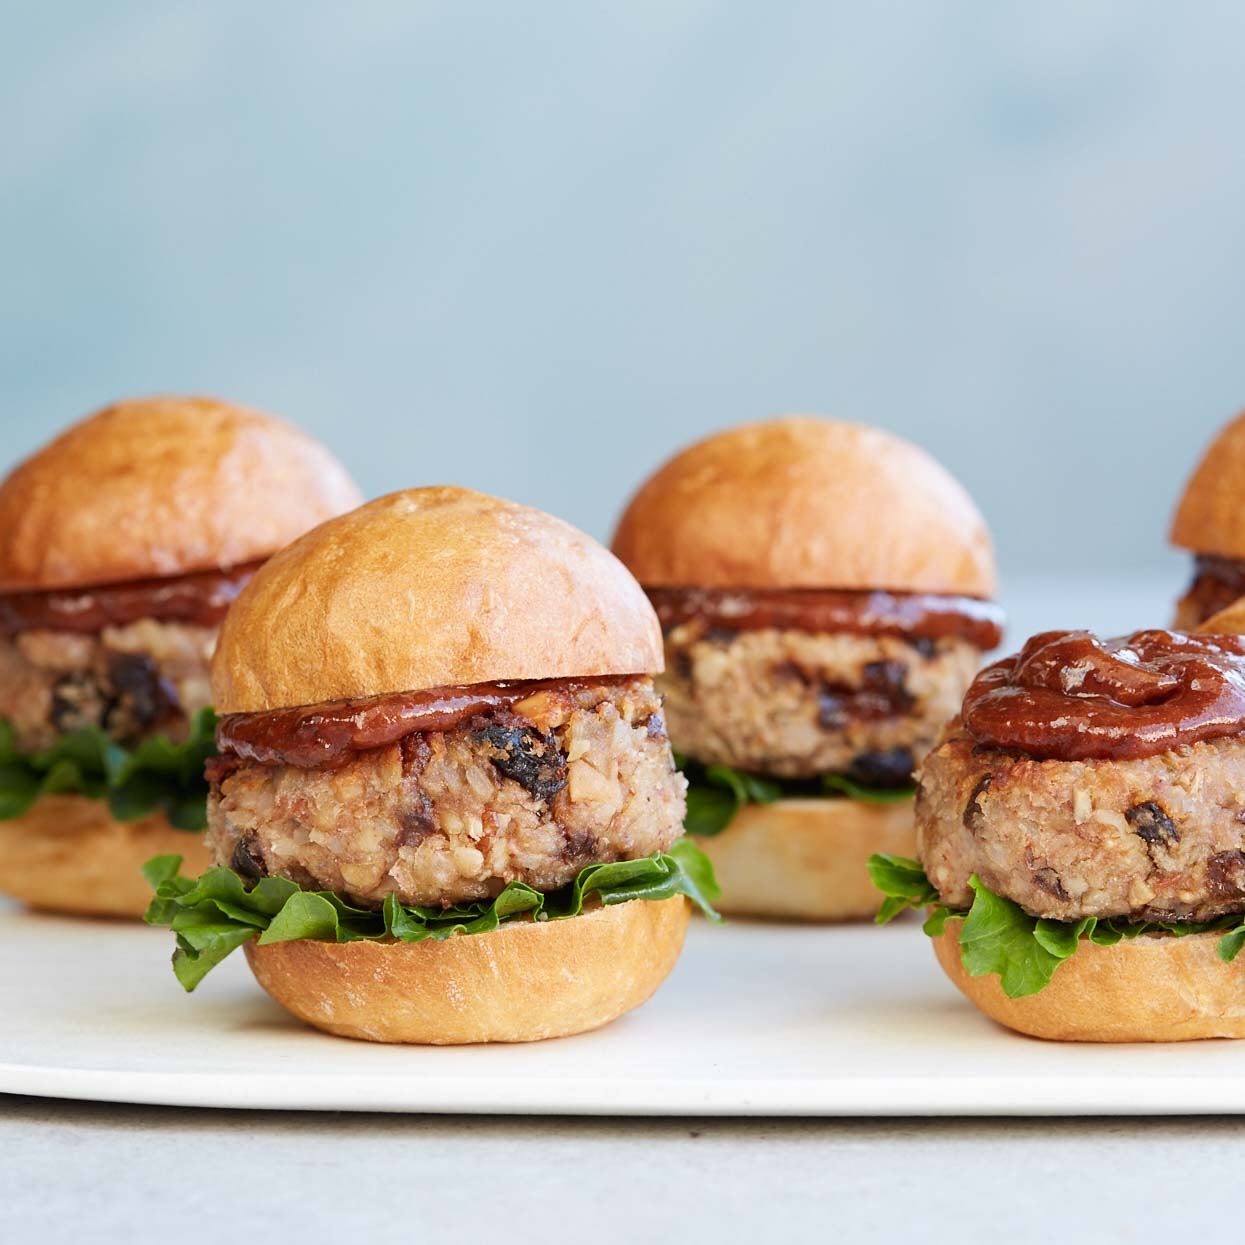 <p>A crowd-pleasing recipe for vegetarian sliders, these burgers are also super healthy, packed with beans, rice, and nuts. Helping to bind them together and add color is a combination of prunes, egg, and panko breadcrumbs. For a sweet tangy finish, make the optional plum ketchup to serve with it.</p>